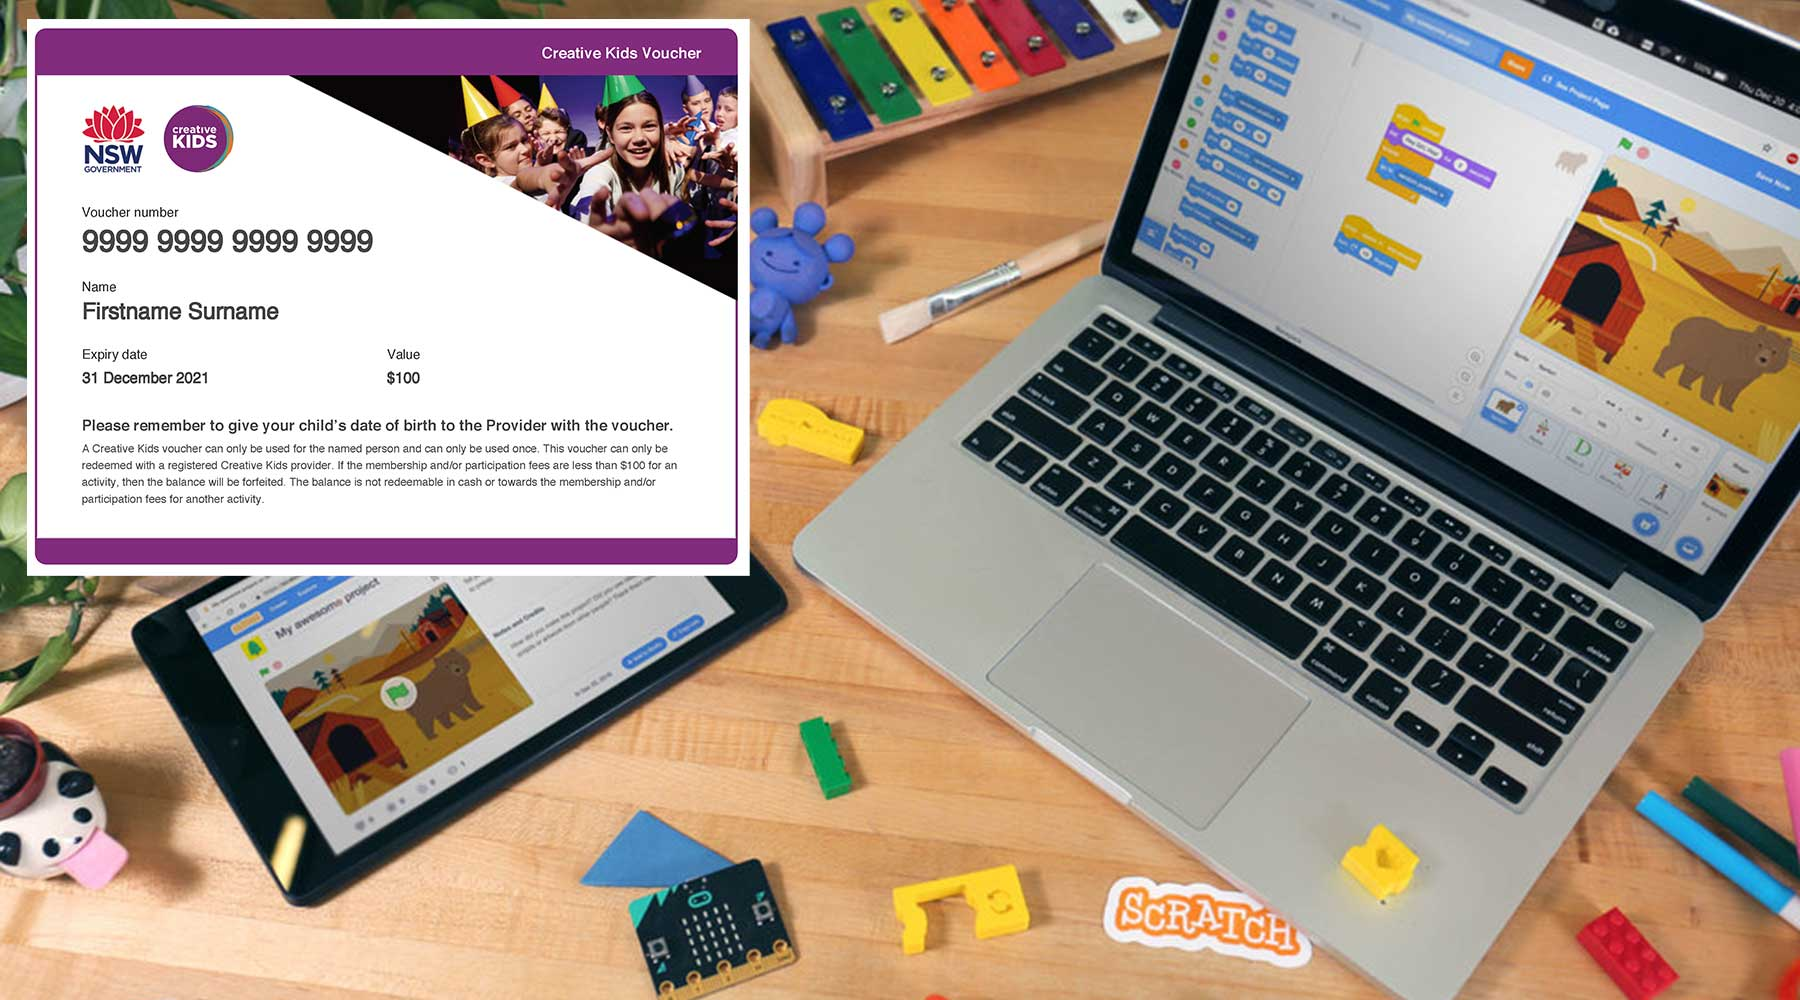 Creative Kids Online Academy - Scratch Level 1 with Creative Kids Voucher